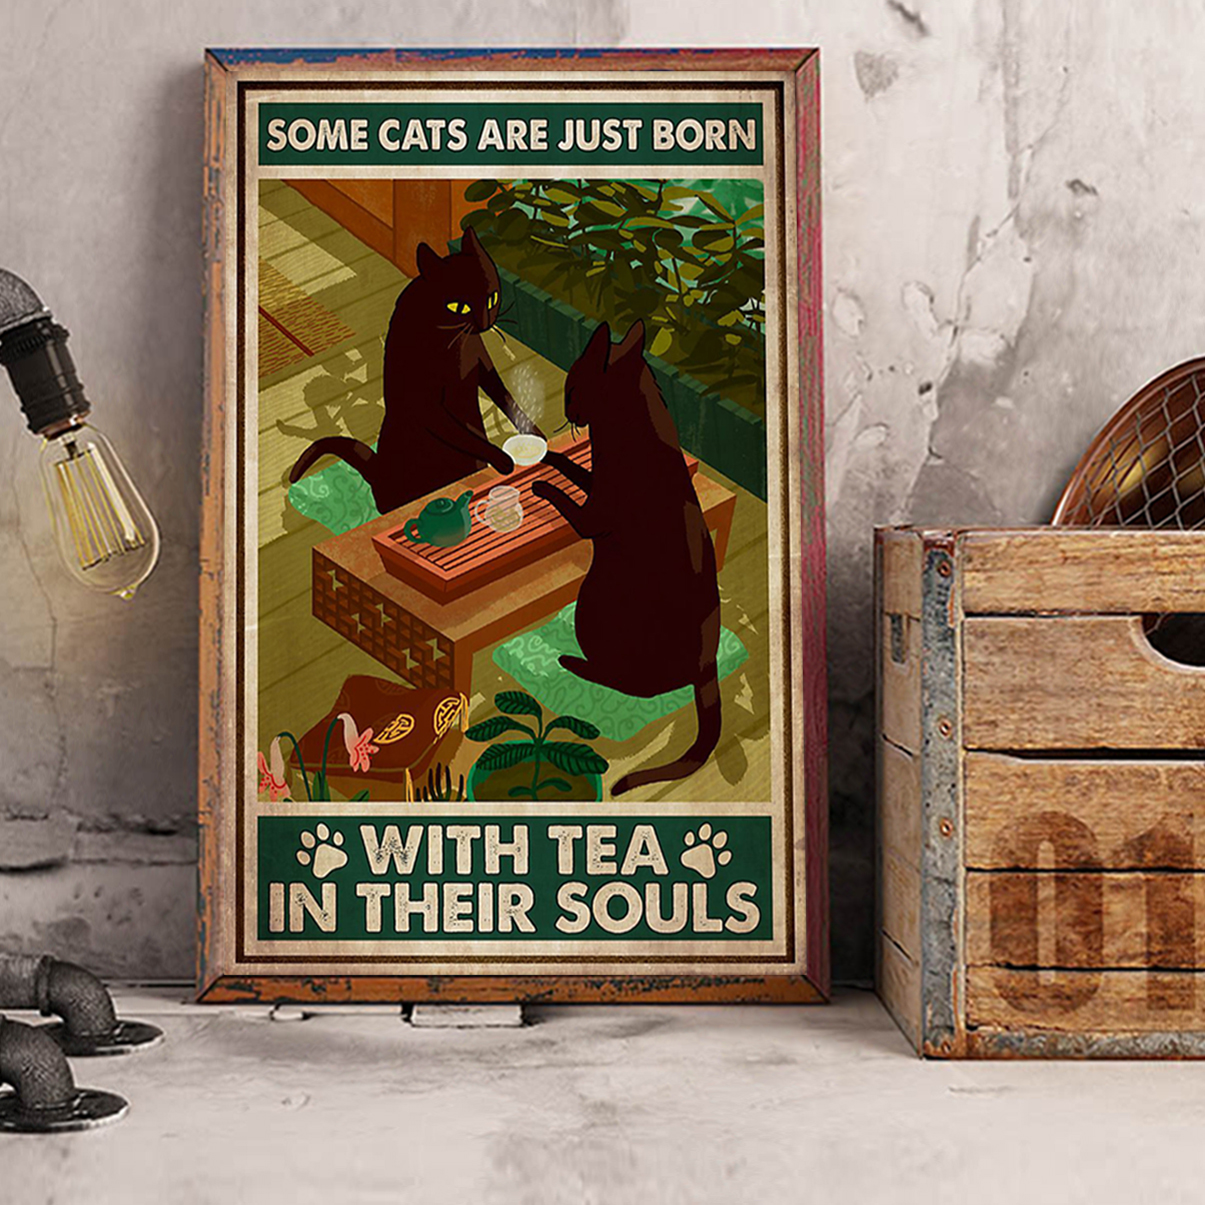 Some cats are just born with tea in their souls poster A2